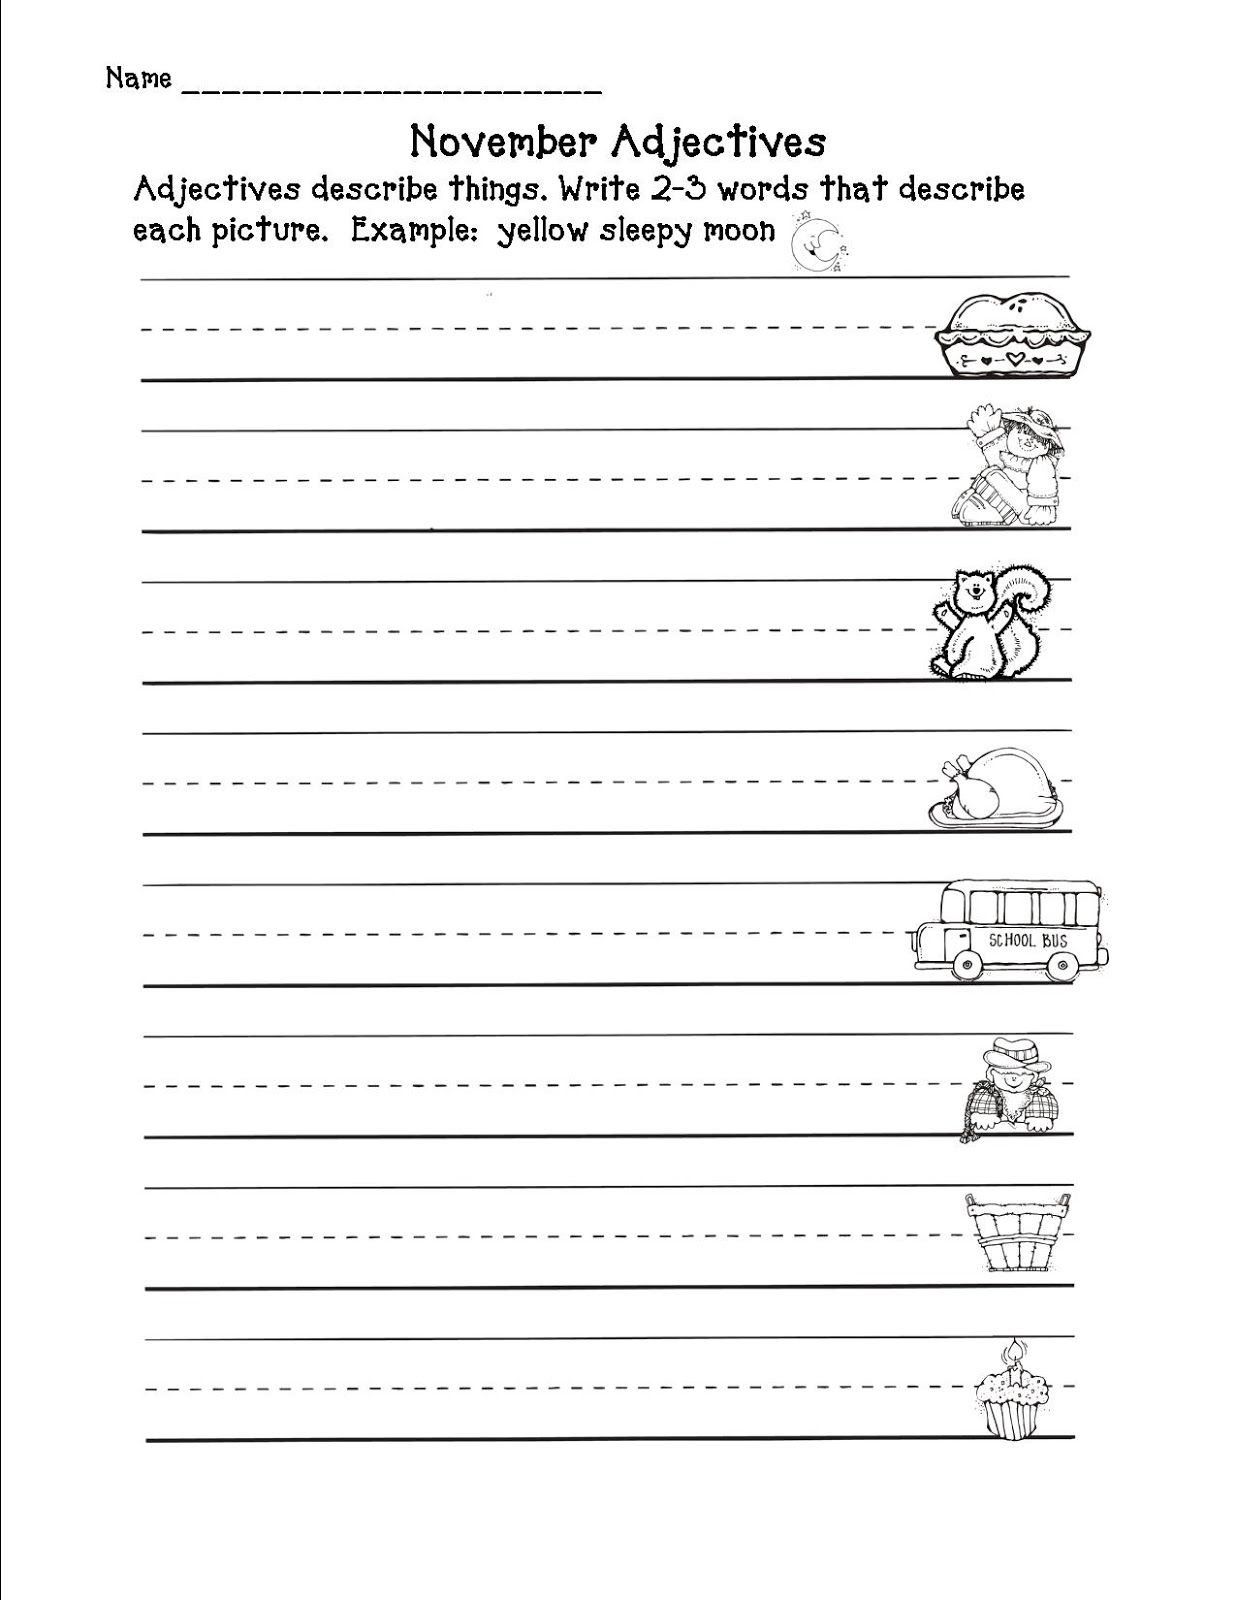 November Adjectives Worksheet Second Grade Freebies   Second grade  freebies [ 1600 x 1236 Pixel ]